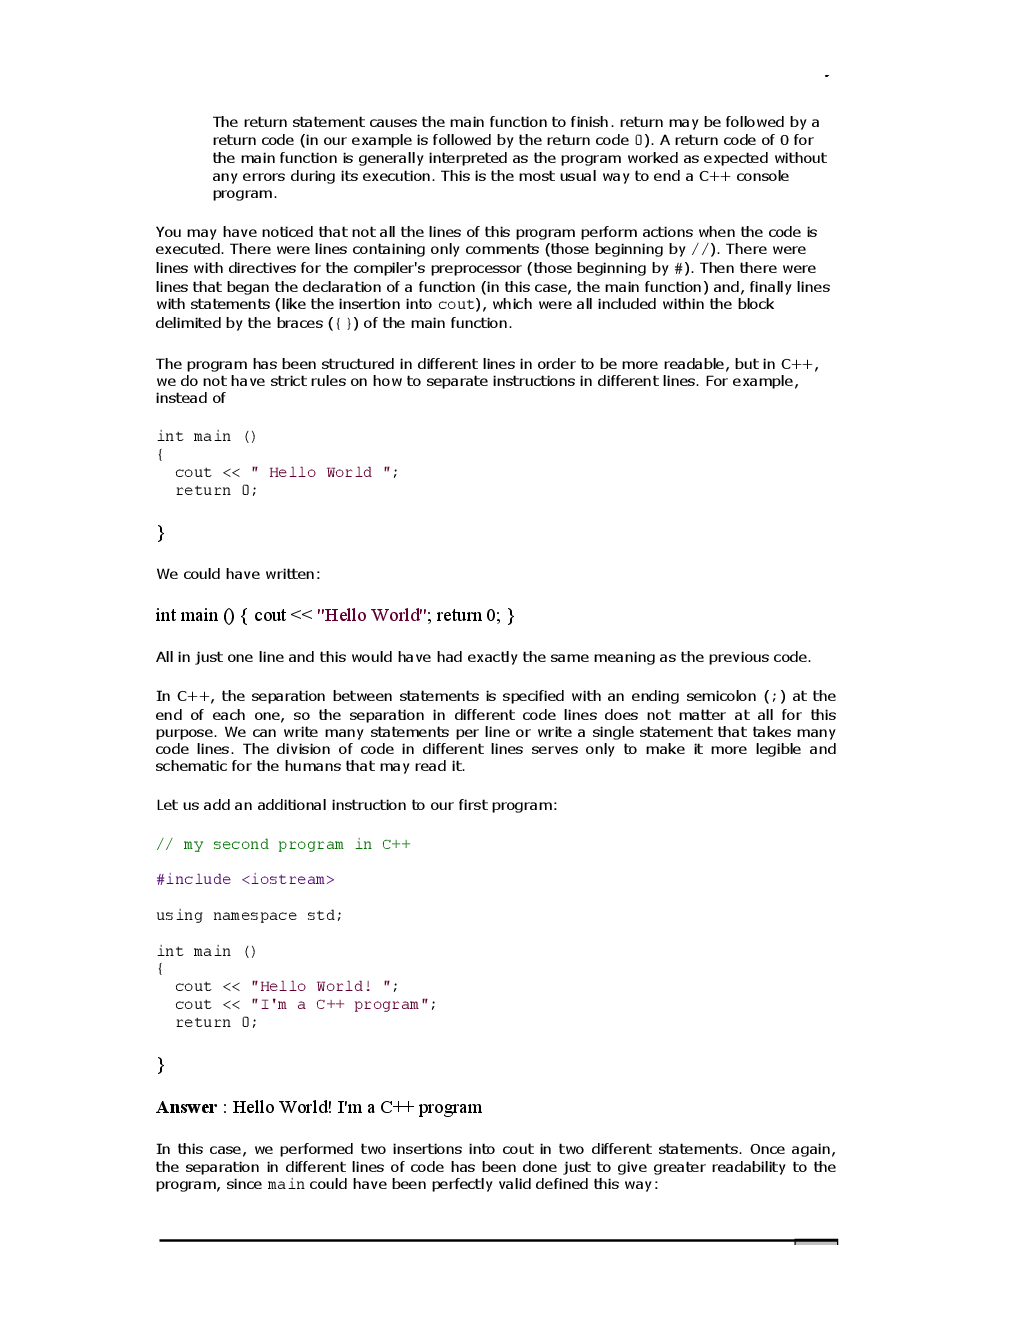 VTU eNotes On History Of C++ For Computer Science Engineering - Page 4